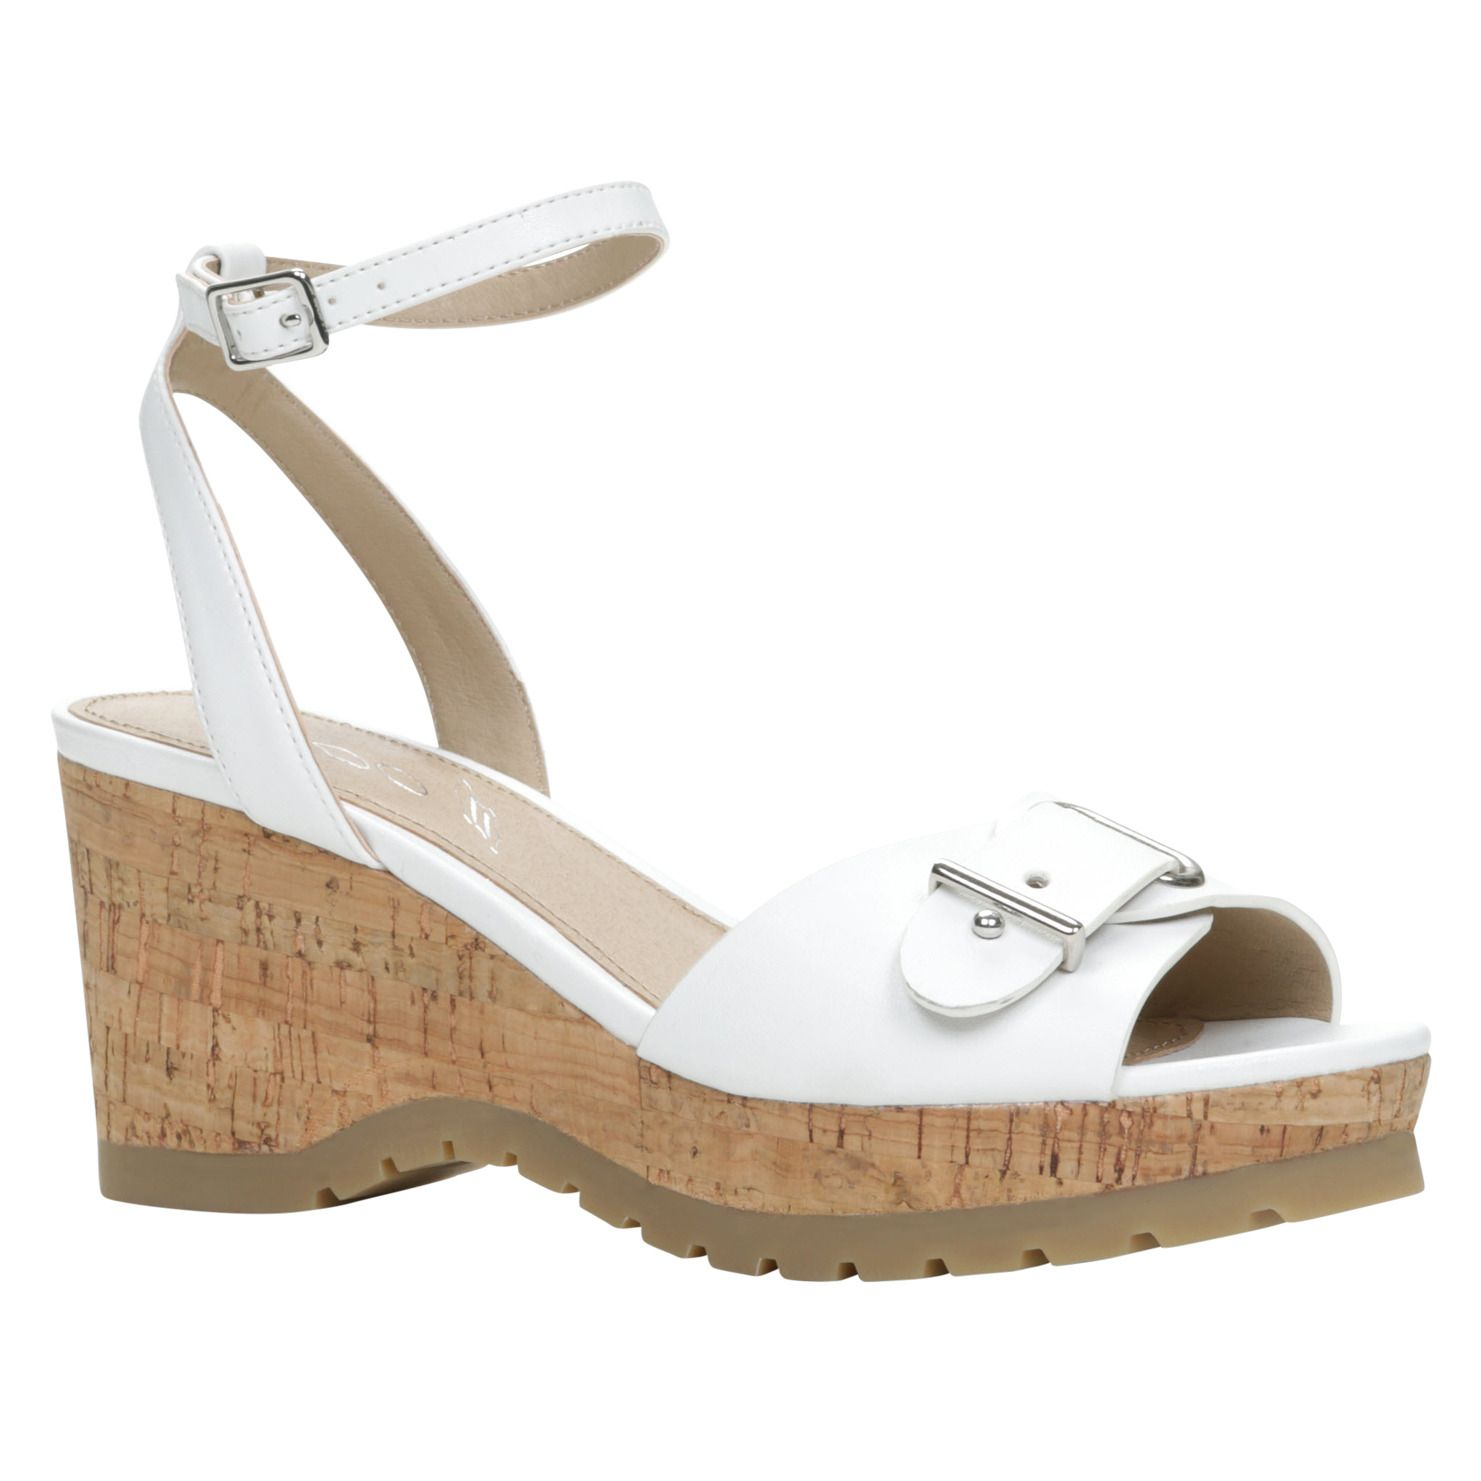 b092290c6bd2 ROWBERRY - women s low-mid heels sandals for sale at ALDO Shoes ...